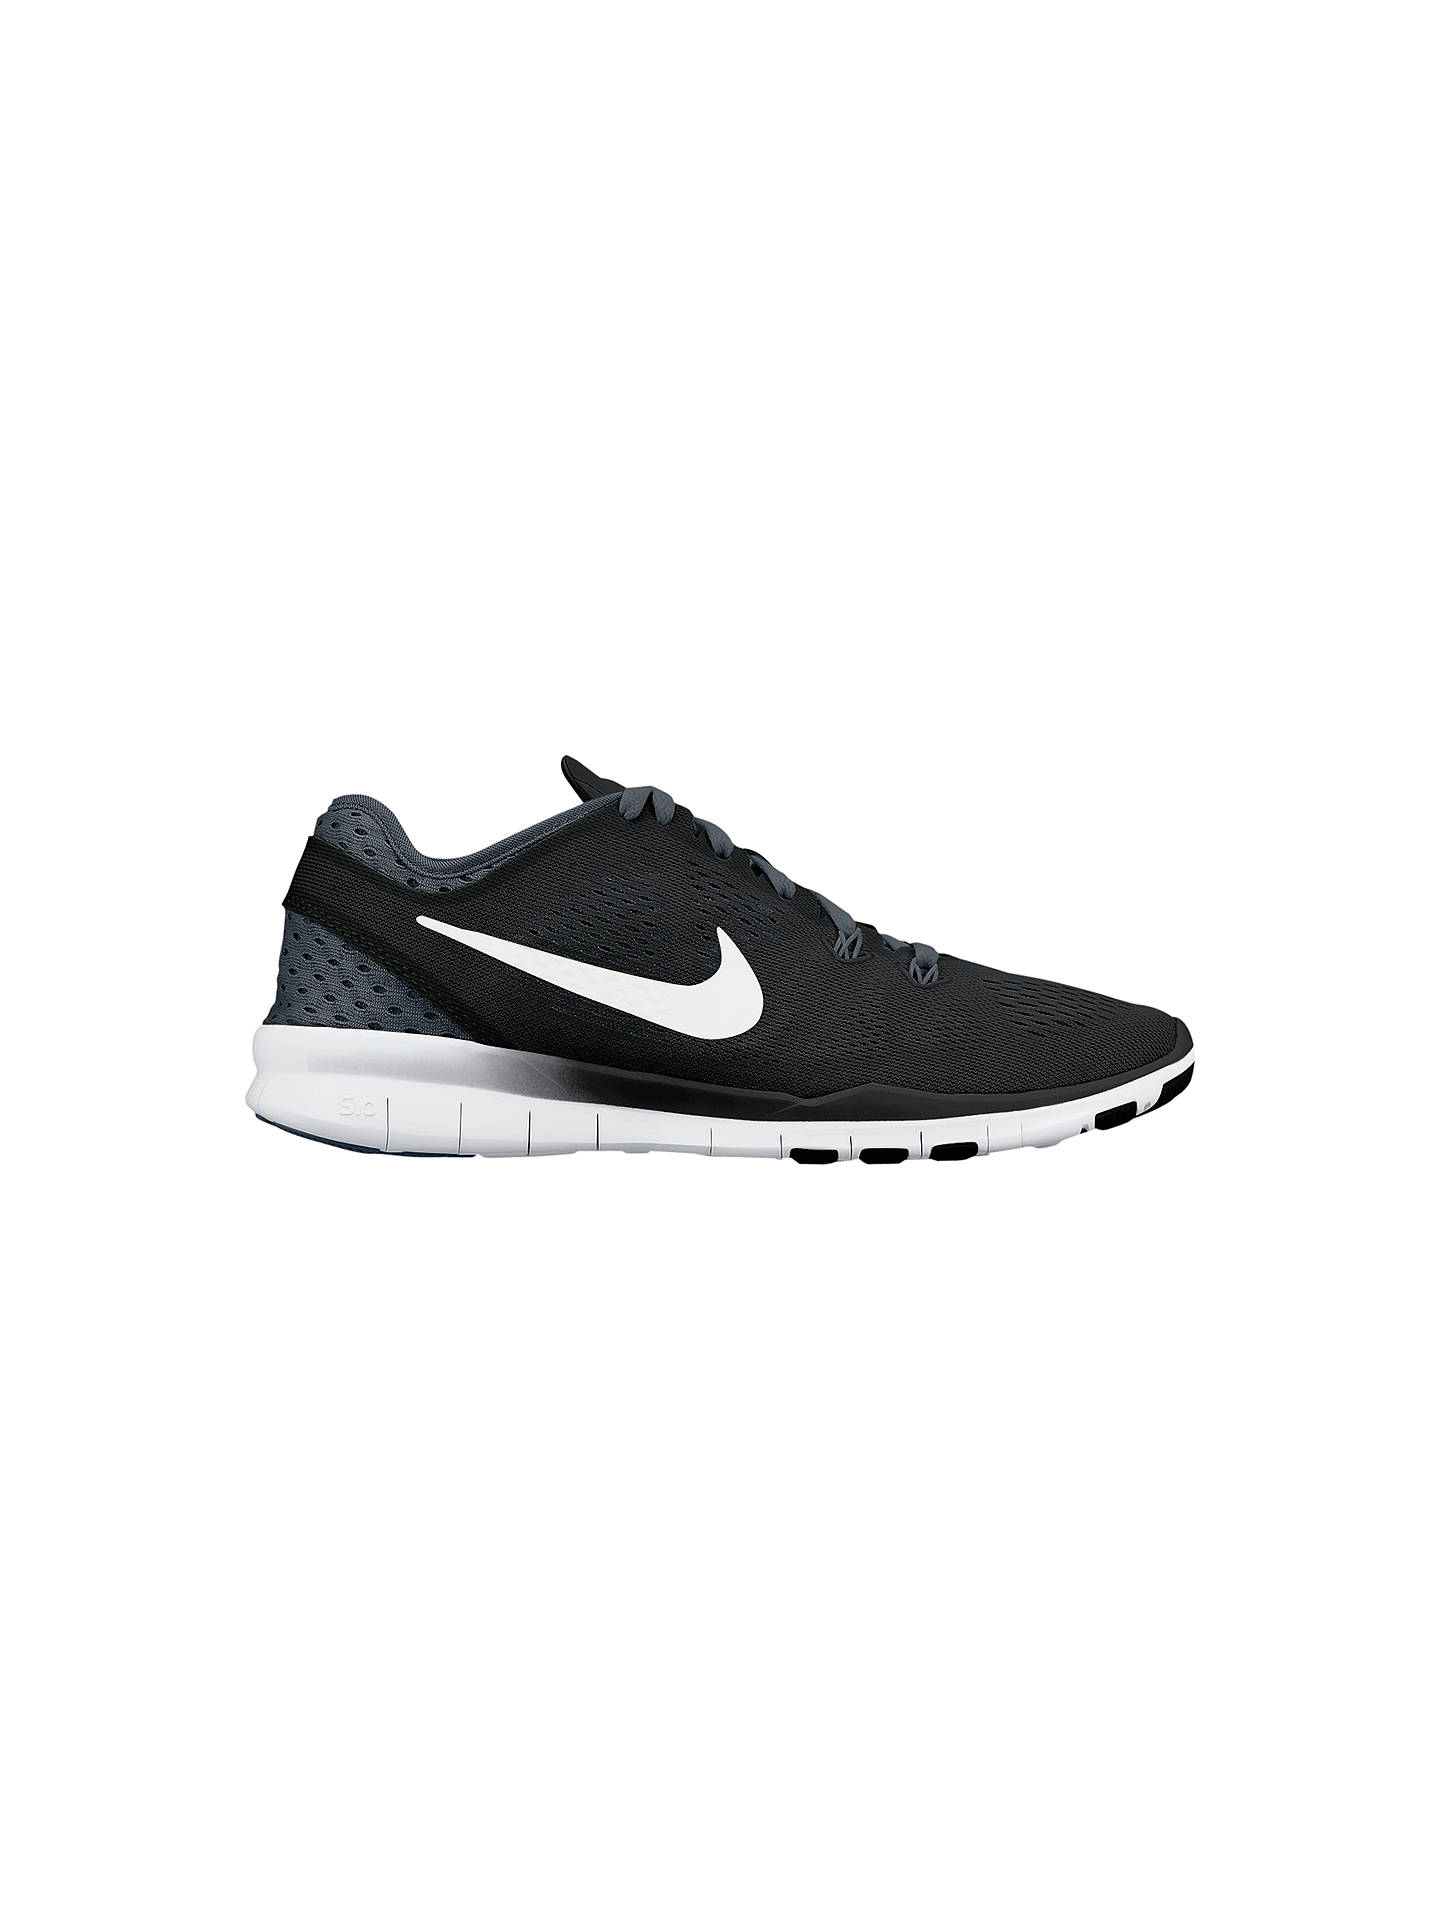 86c988e1dff6 Buy Nike Free 5.0 TR Fit 5 Breathe Women s Cross Trainers